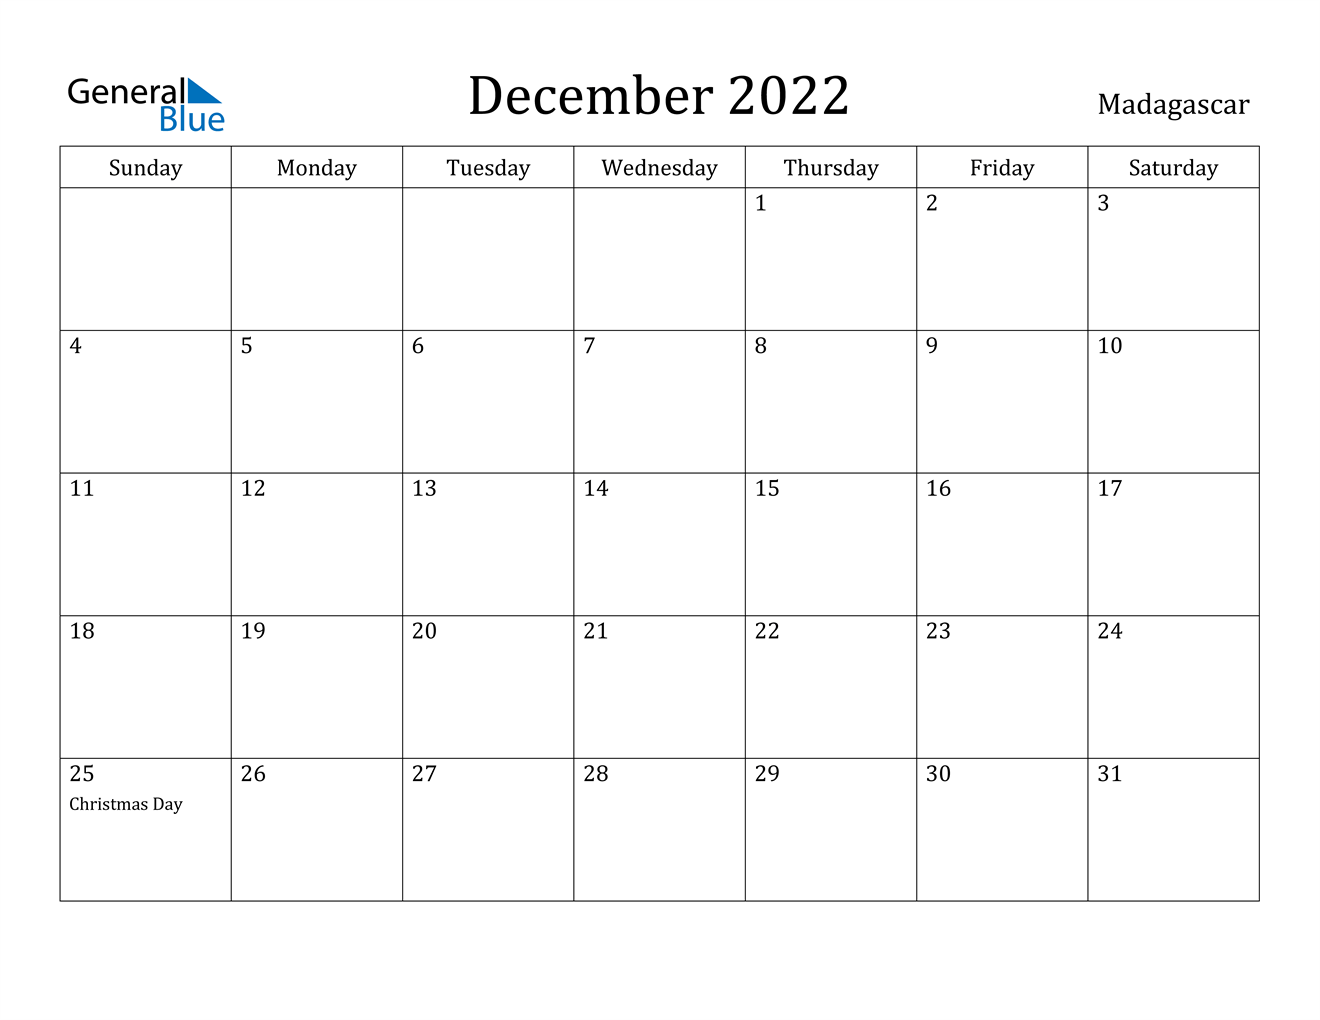 December 2022 Calendar - Madagascar